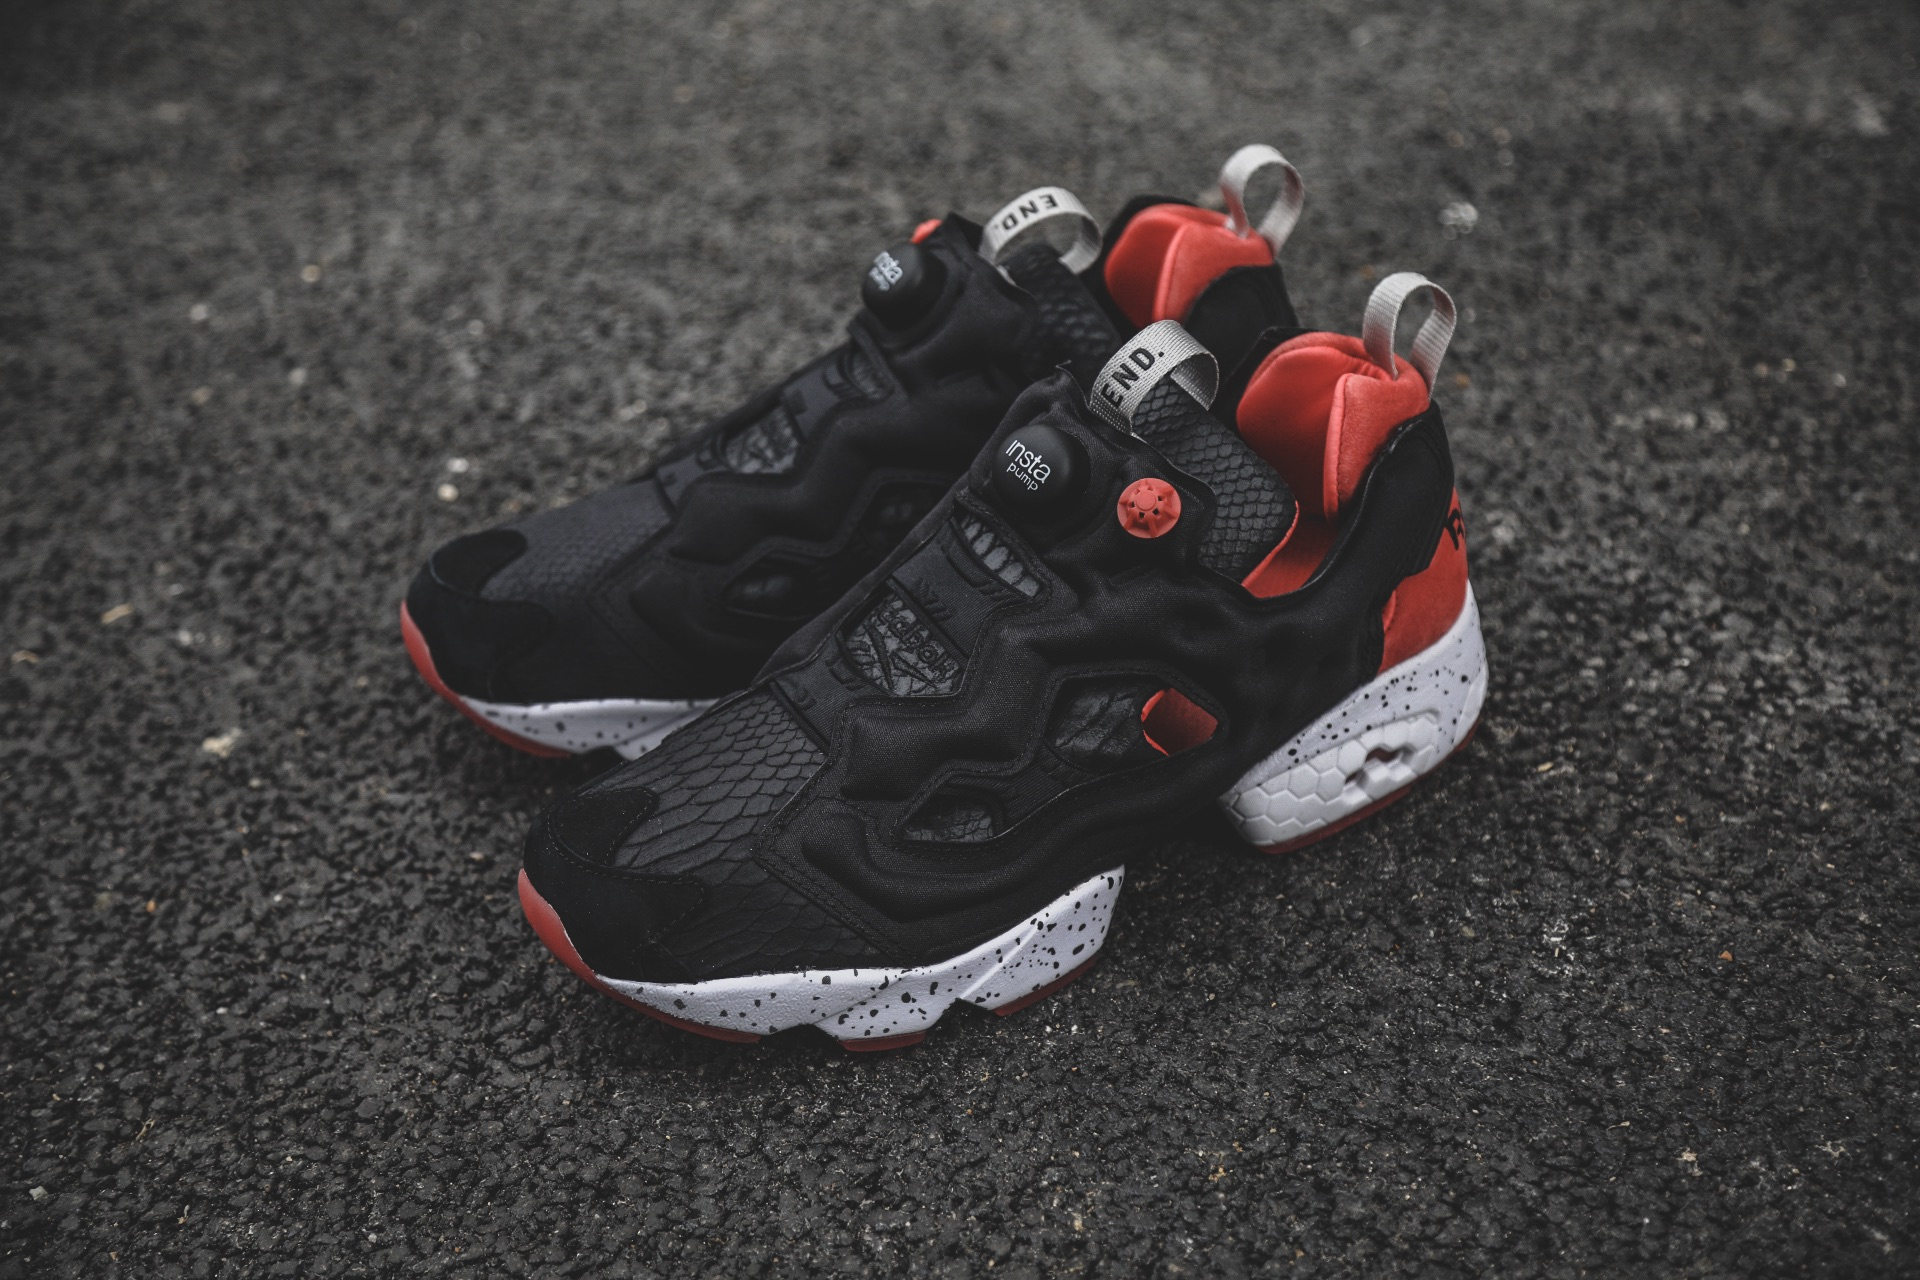 """707216f3e95 The """"Black Salmon"""" Instapump Fury will release on Saturday 18th March at END  Clothing. Scroll down to see exclusive photos of this upcoming release."""